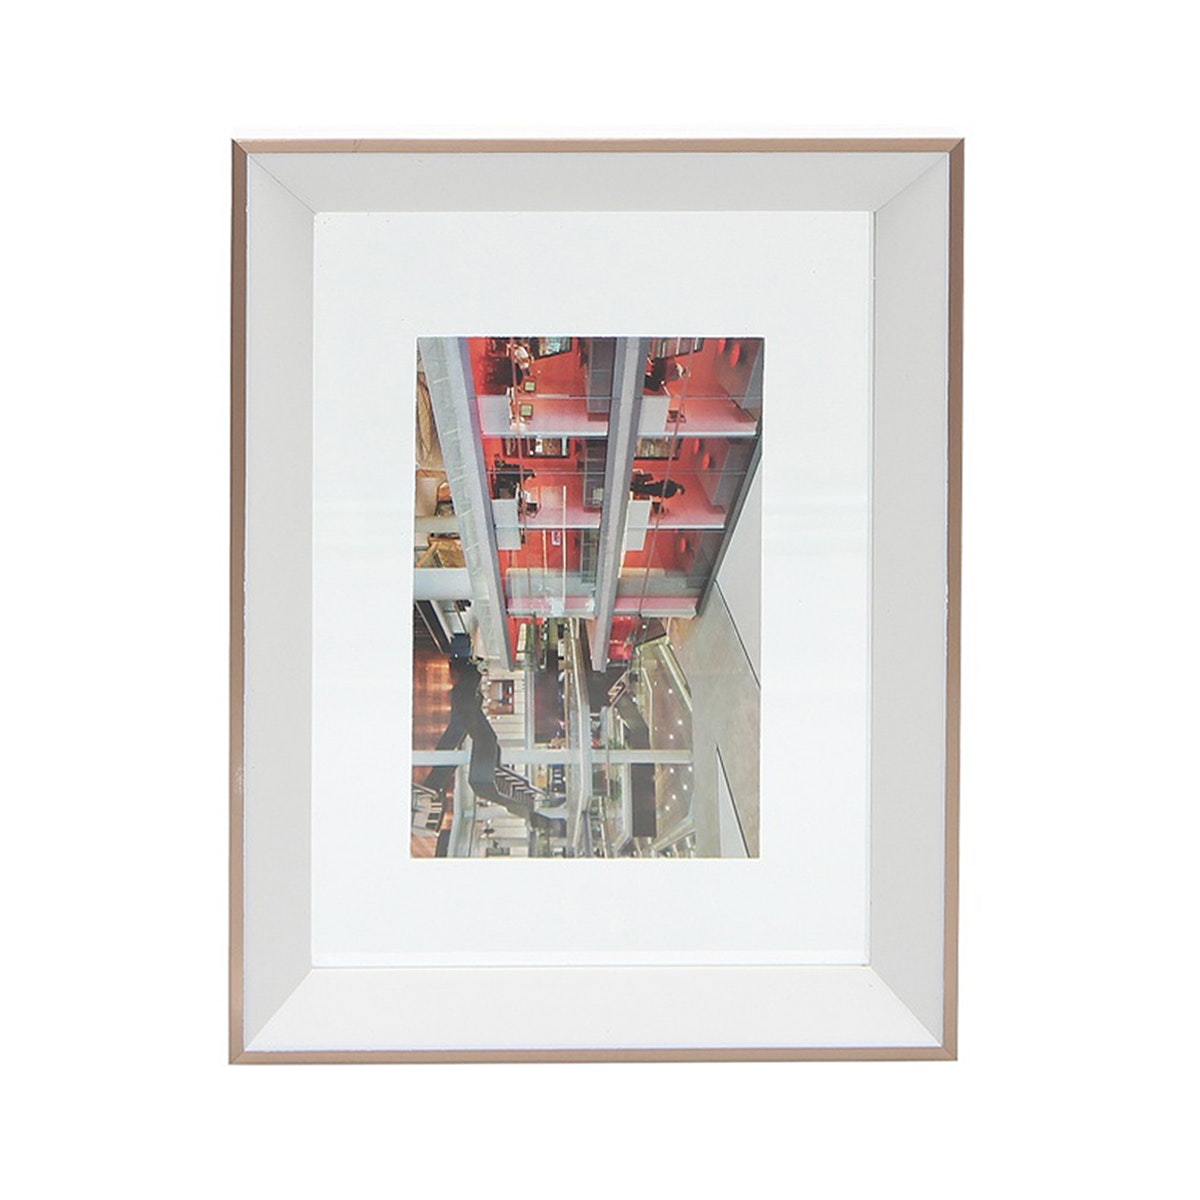 Vivere Photo Frame Std Mixed Floating White 4x6 Inch